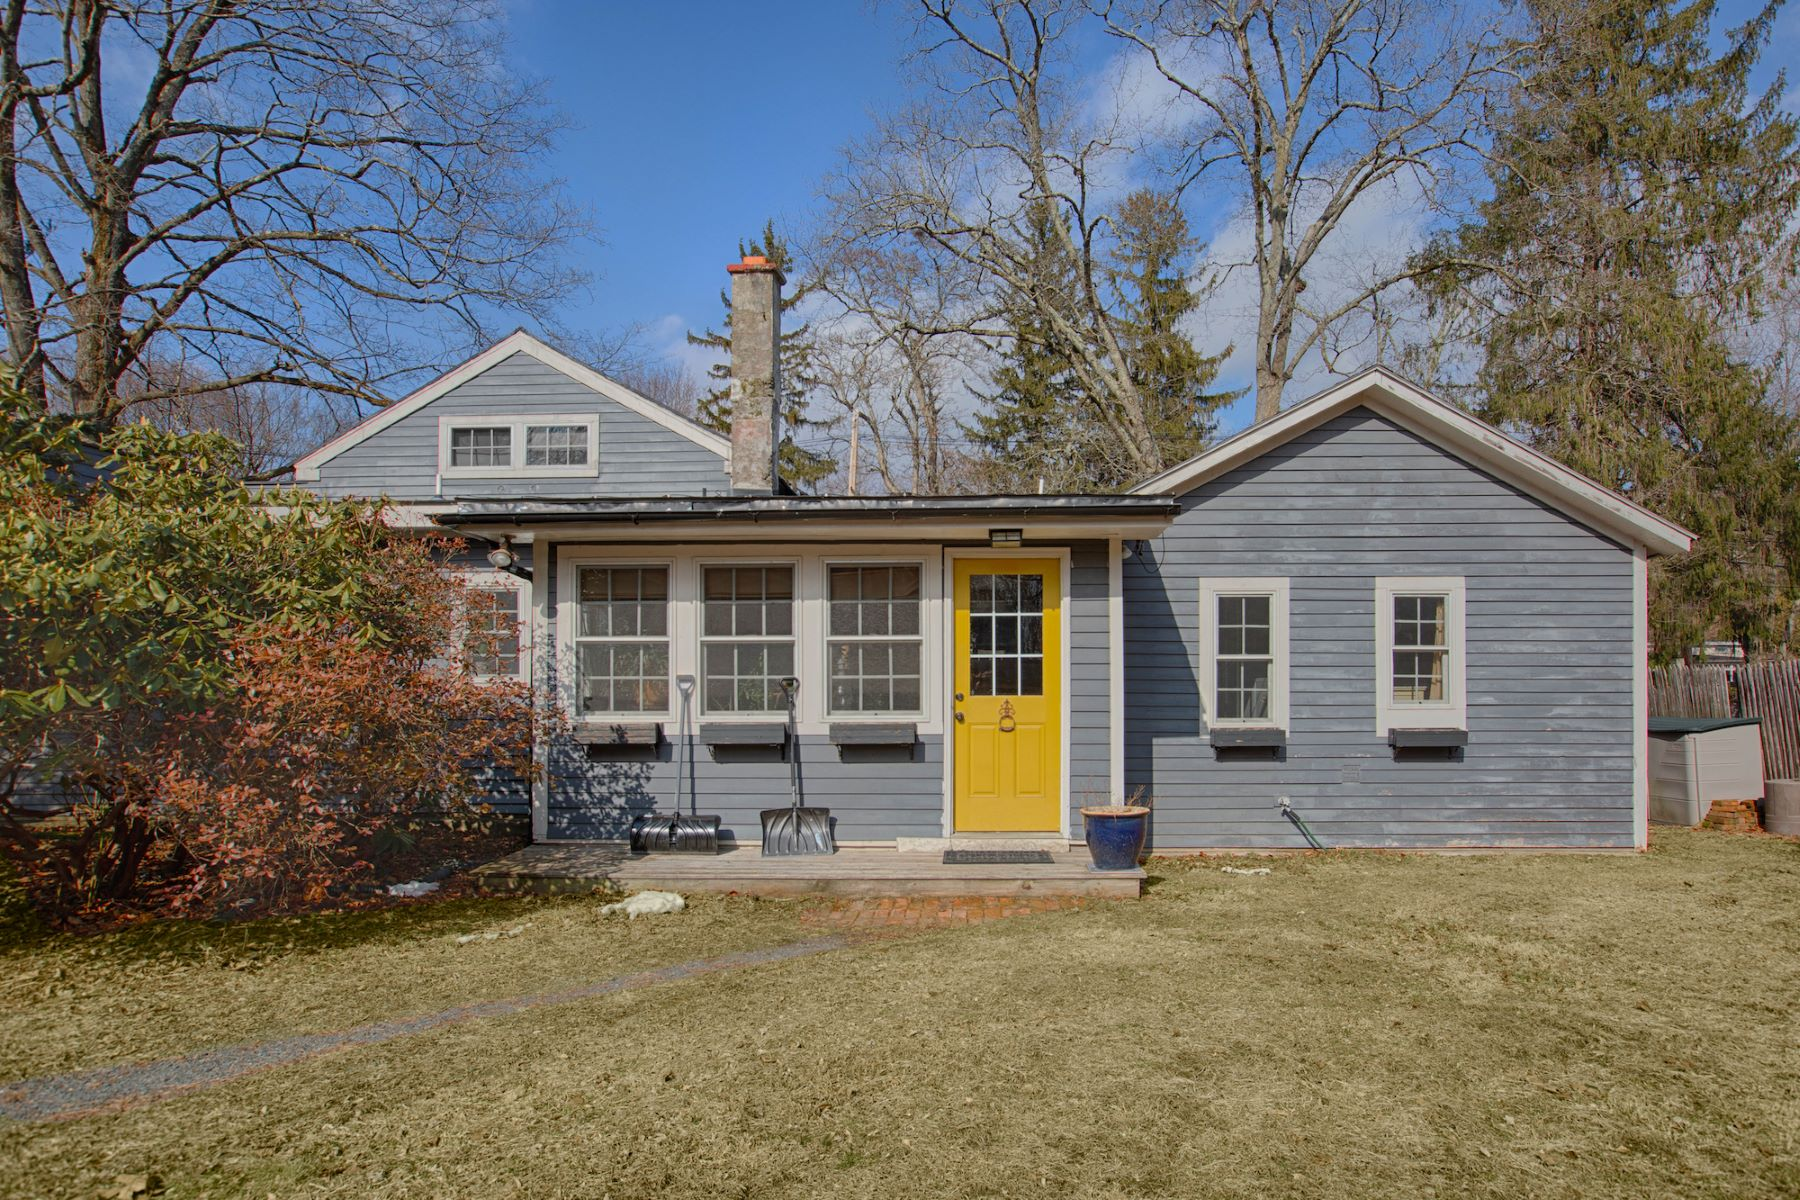 Single Family Homes for Active at Historic Artful Home 1020 Kinderhook St Valatie, New York 12184 United States